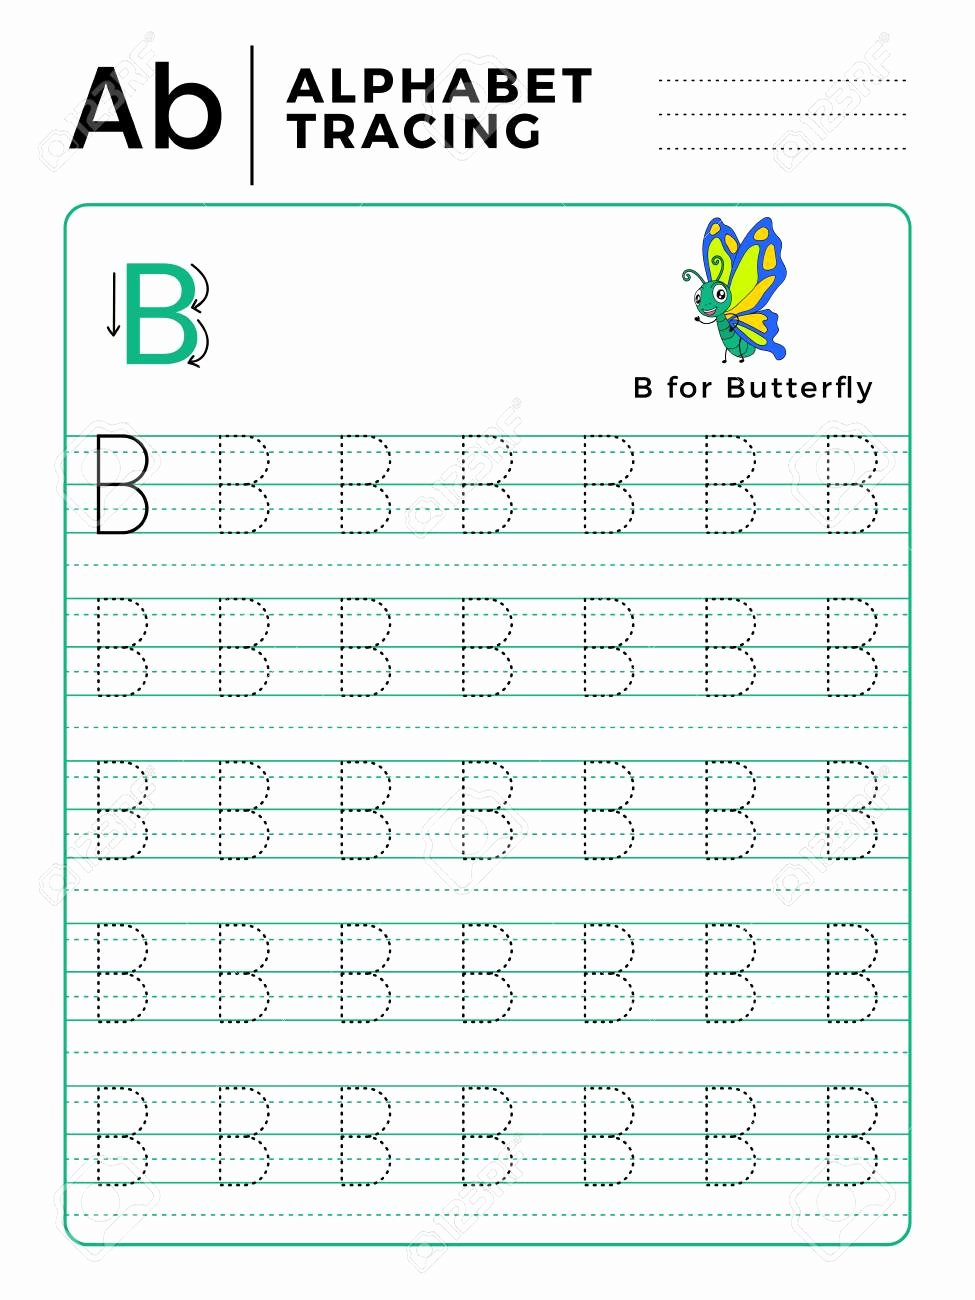 B Worksheets for Preschoolers Lovely Letter B Alphabet Tracing Book with Example and Funny butterfly